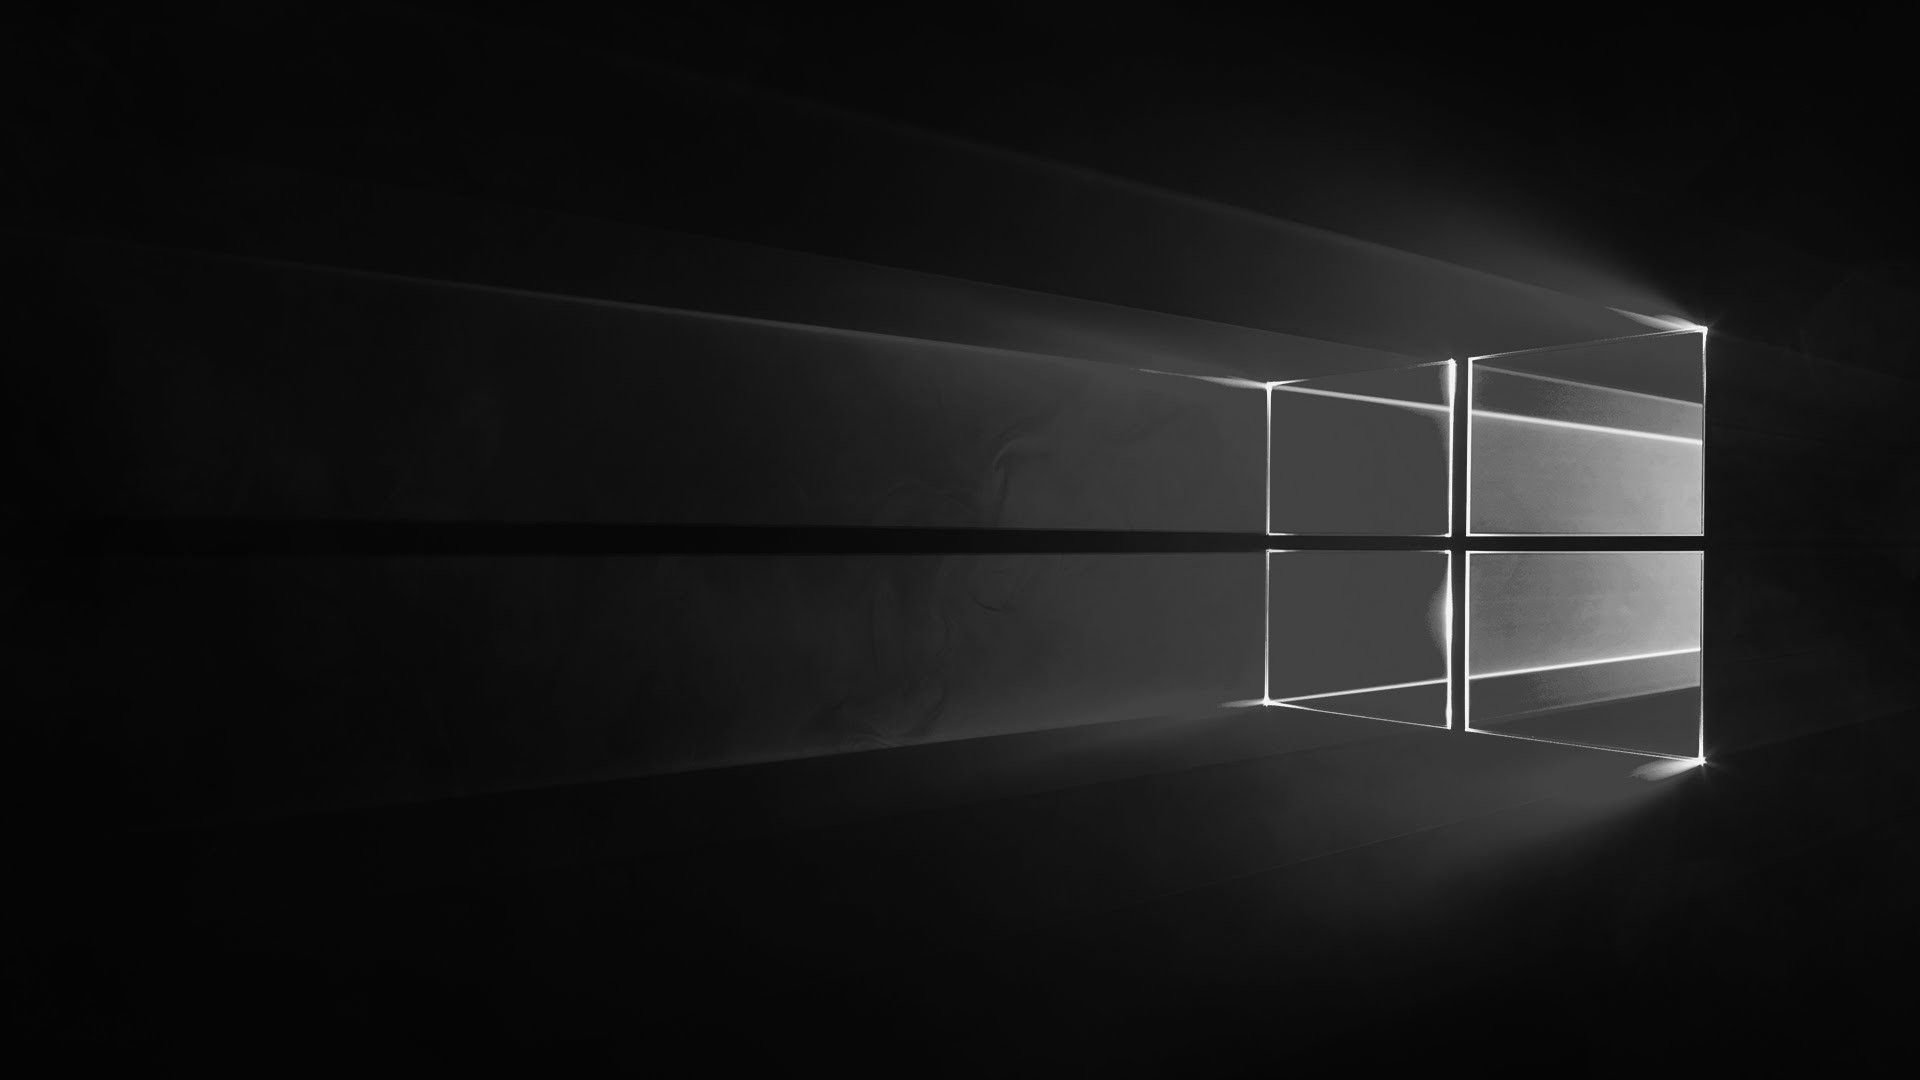 19201080 windows 10 black hd wallpaper 4K, 2020 Duvar